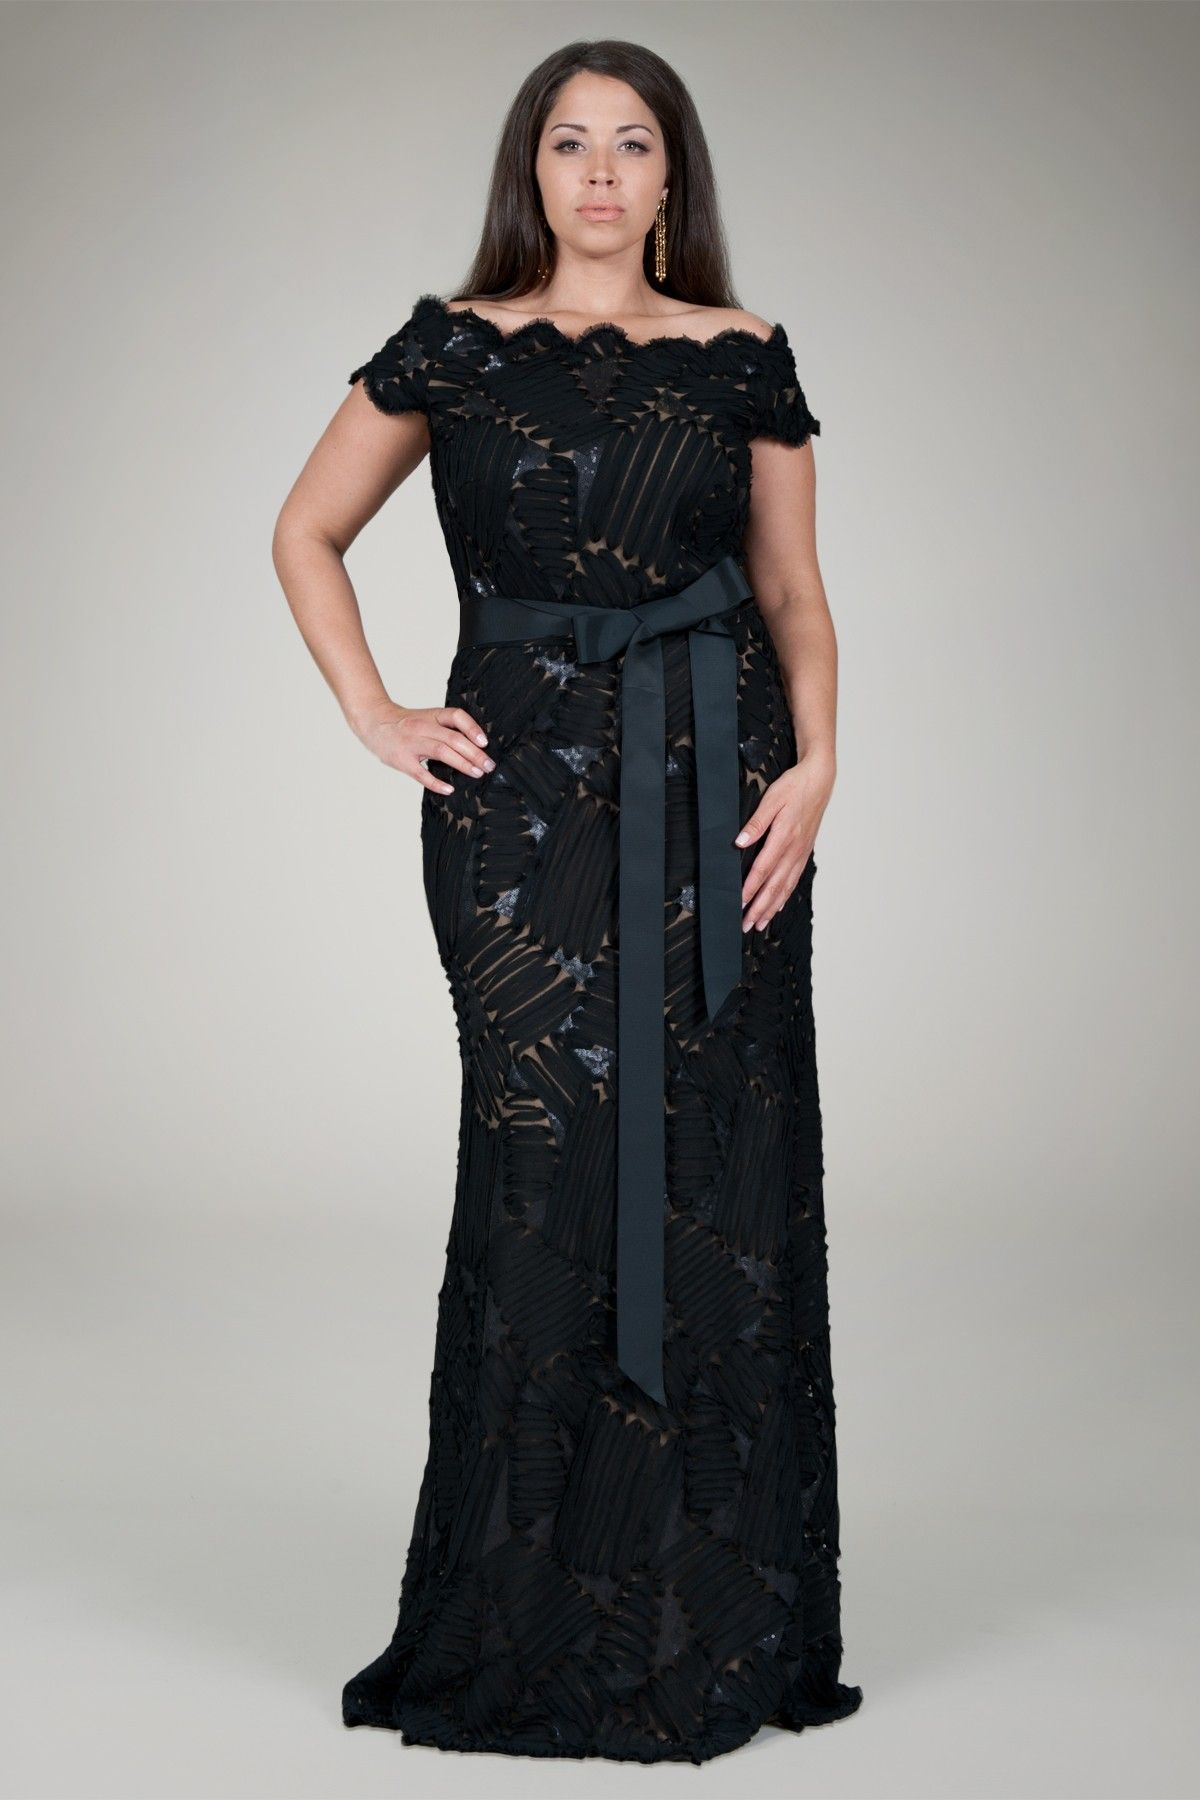 34b710b59d8e5 Embroidered Mini Paillette Gown in Black   Nude - Plus Size Evening Shop